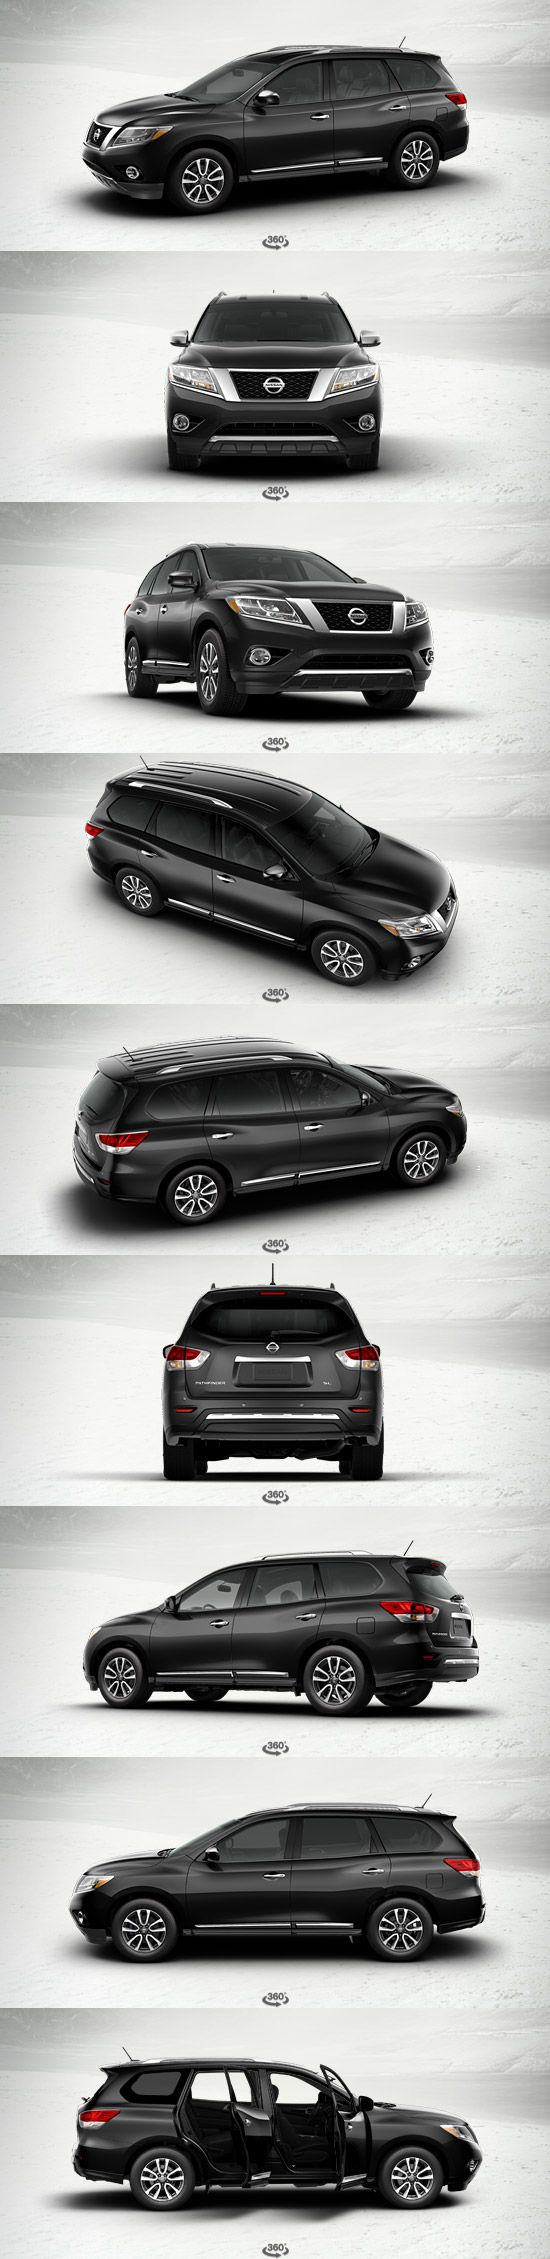 Top 25 best 2014 nissan pathfinder ideas on pinterest i want this 2014 nissan pathfinder sl front wheel drive exterior vanachro Image collections